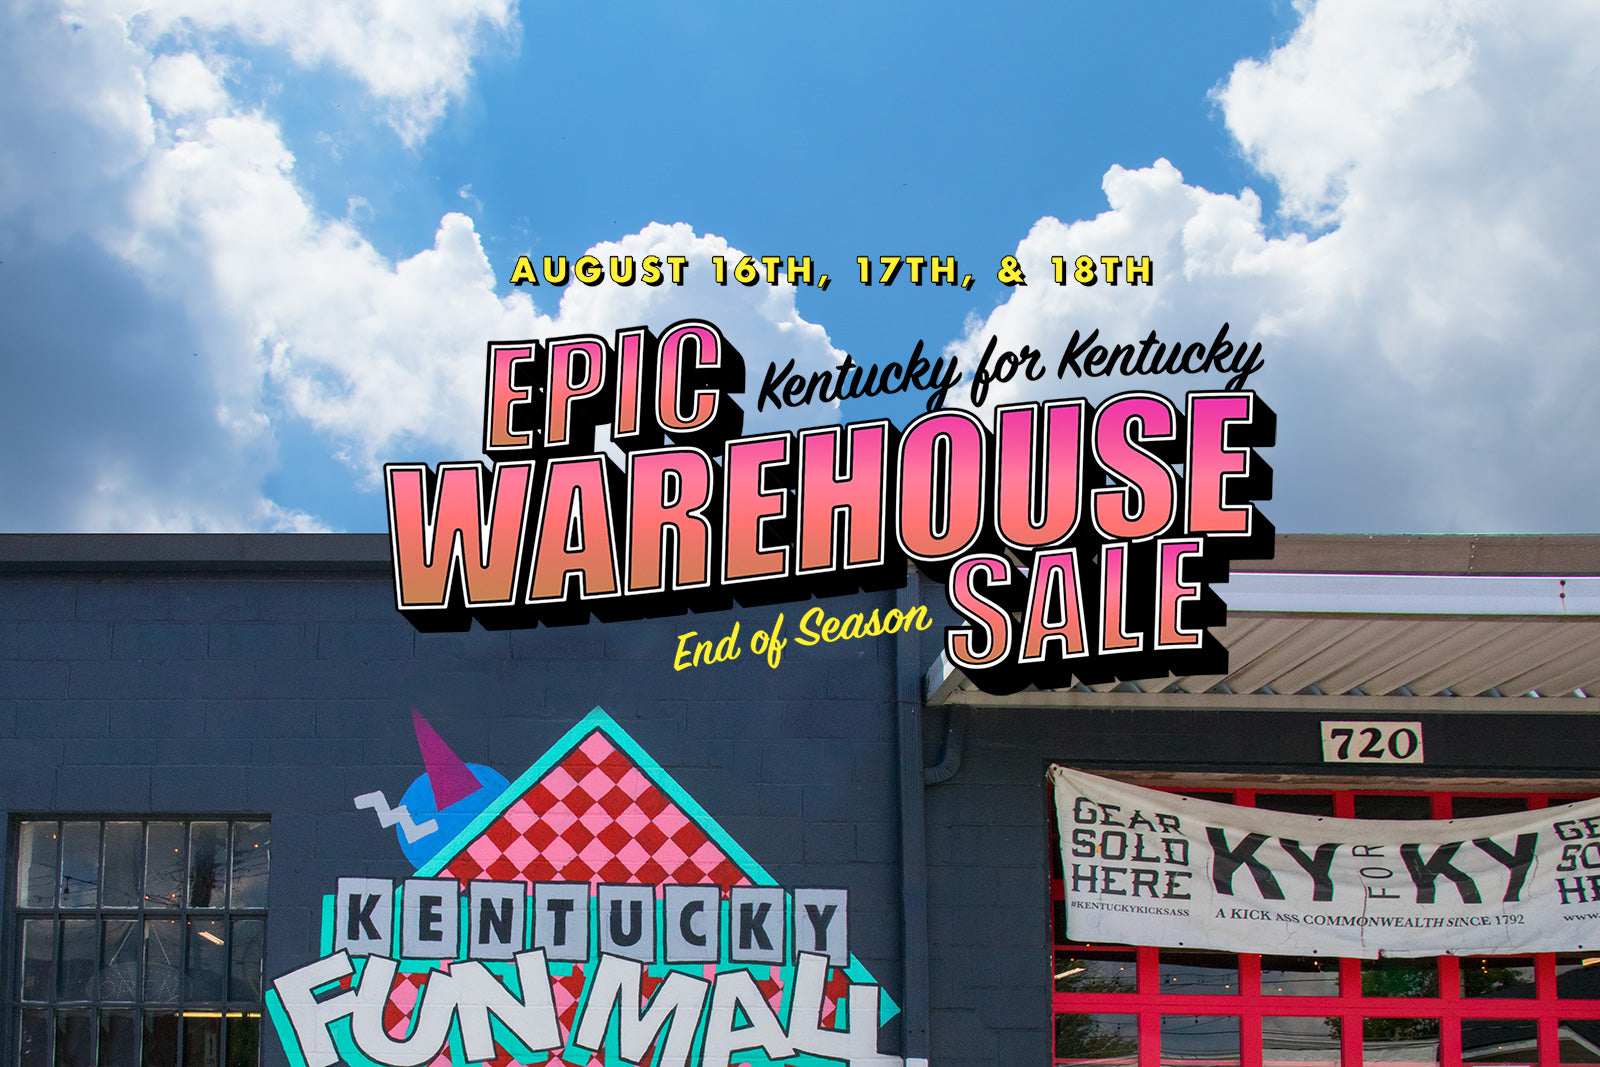 Epic 3 Day Warehouse Sale!